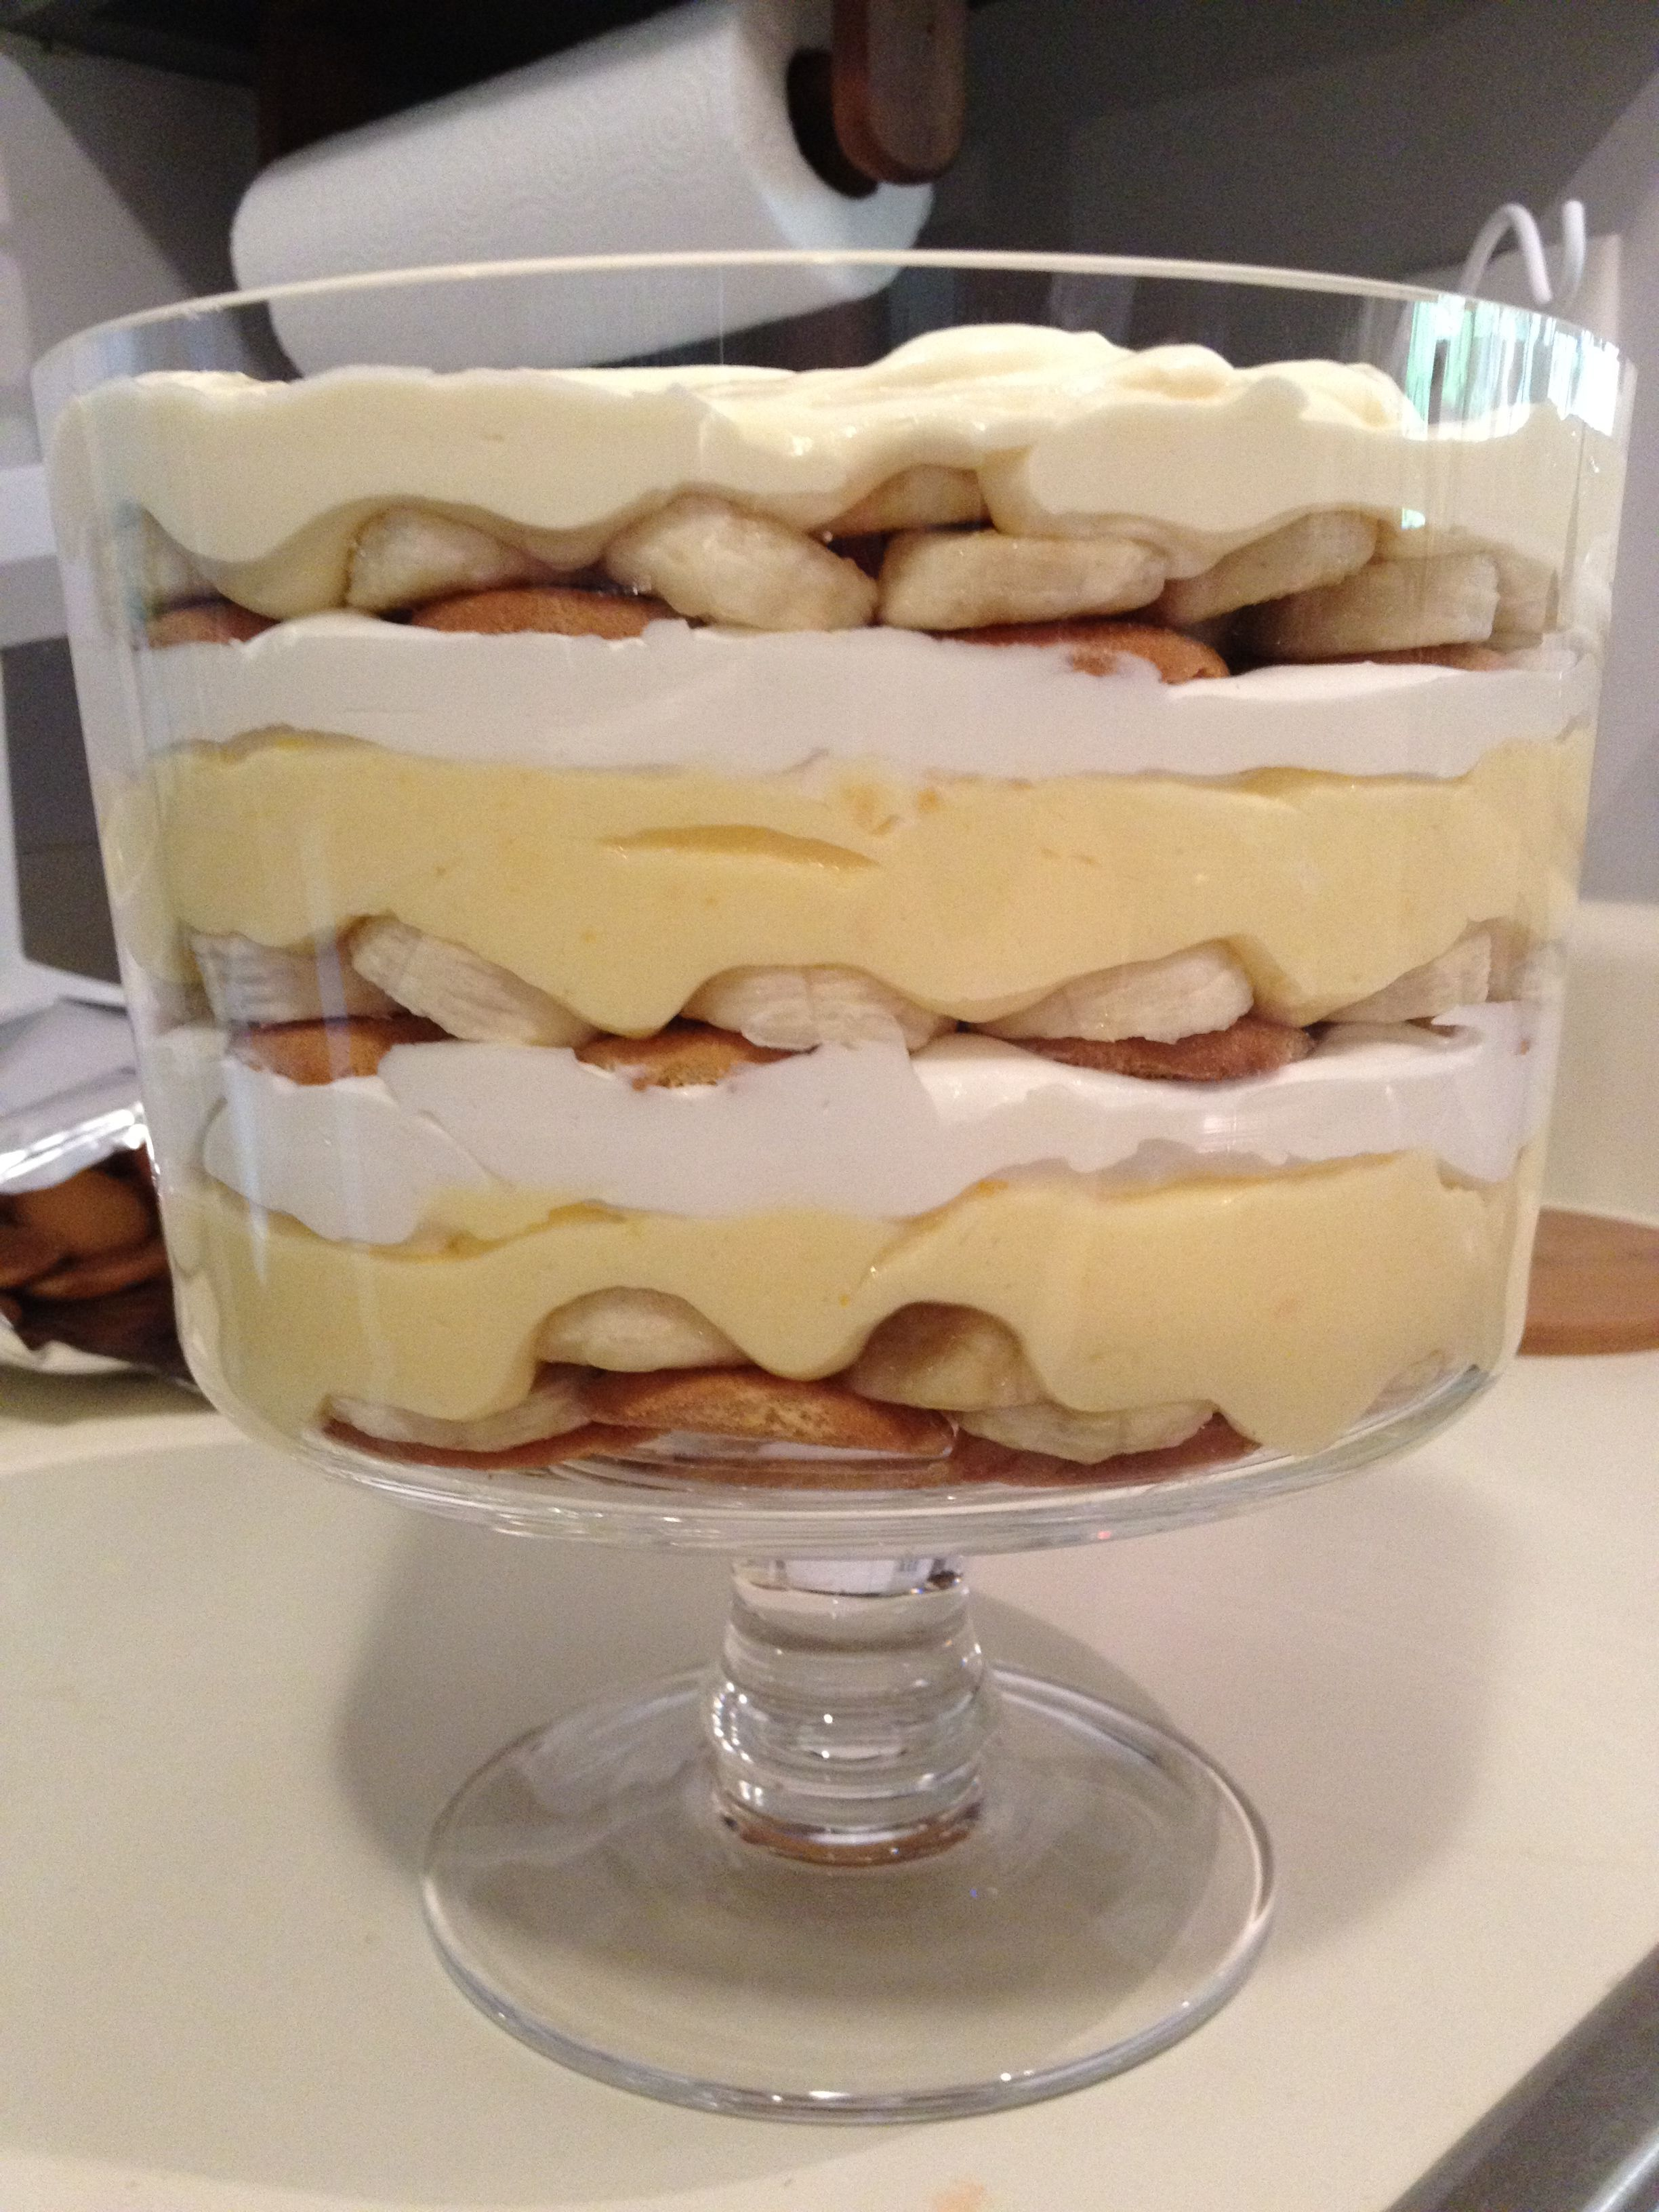 paula dean's banana pudding! I modified the recipe a little bit from the original. I layered vanilla wafers, bananas, pudding, cool whip. PUDDING LAYER: mix 2 sm boxes instant french vanilla pudding + 3 cups cold milk with hand mixer COOL WHIP LAYER: mix 8oz soft crm chz + 7-10oz swt condensed milk until smooth, then fold in 12oz thawed cool whip. Layer and garnish with dollop of cool whip, bananas, crushed wafers and serve chilled